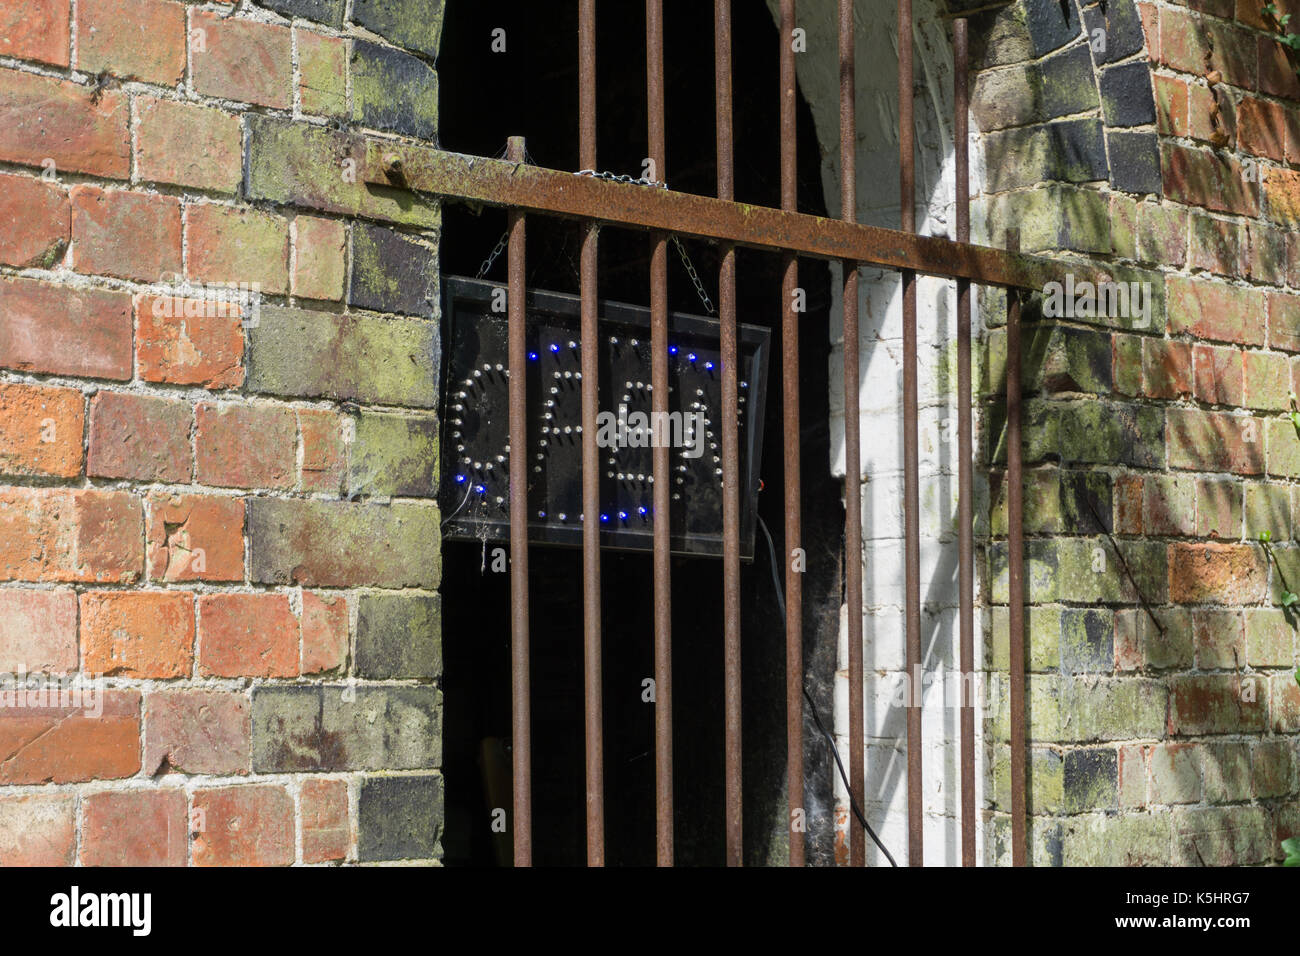 Electrically lit Open sign located behind a barred window. - Stock Image